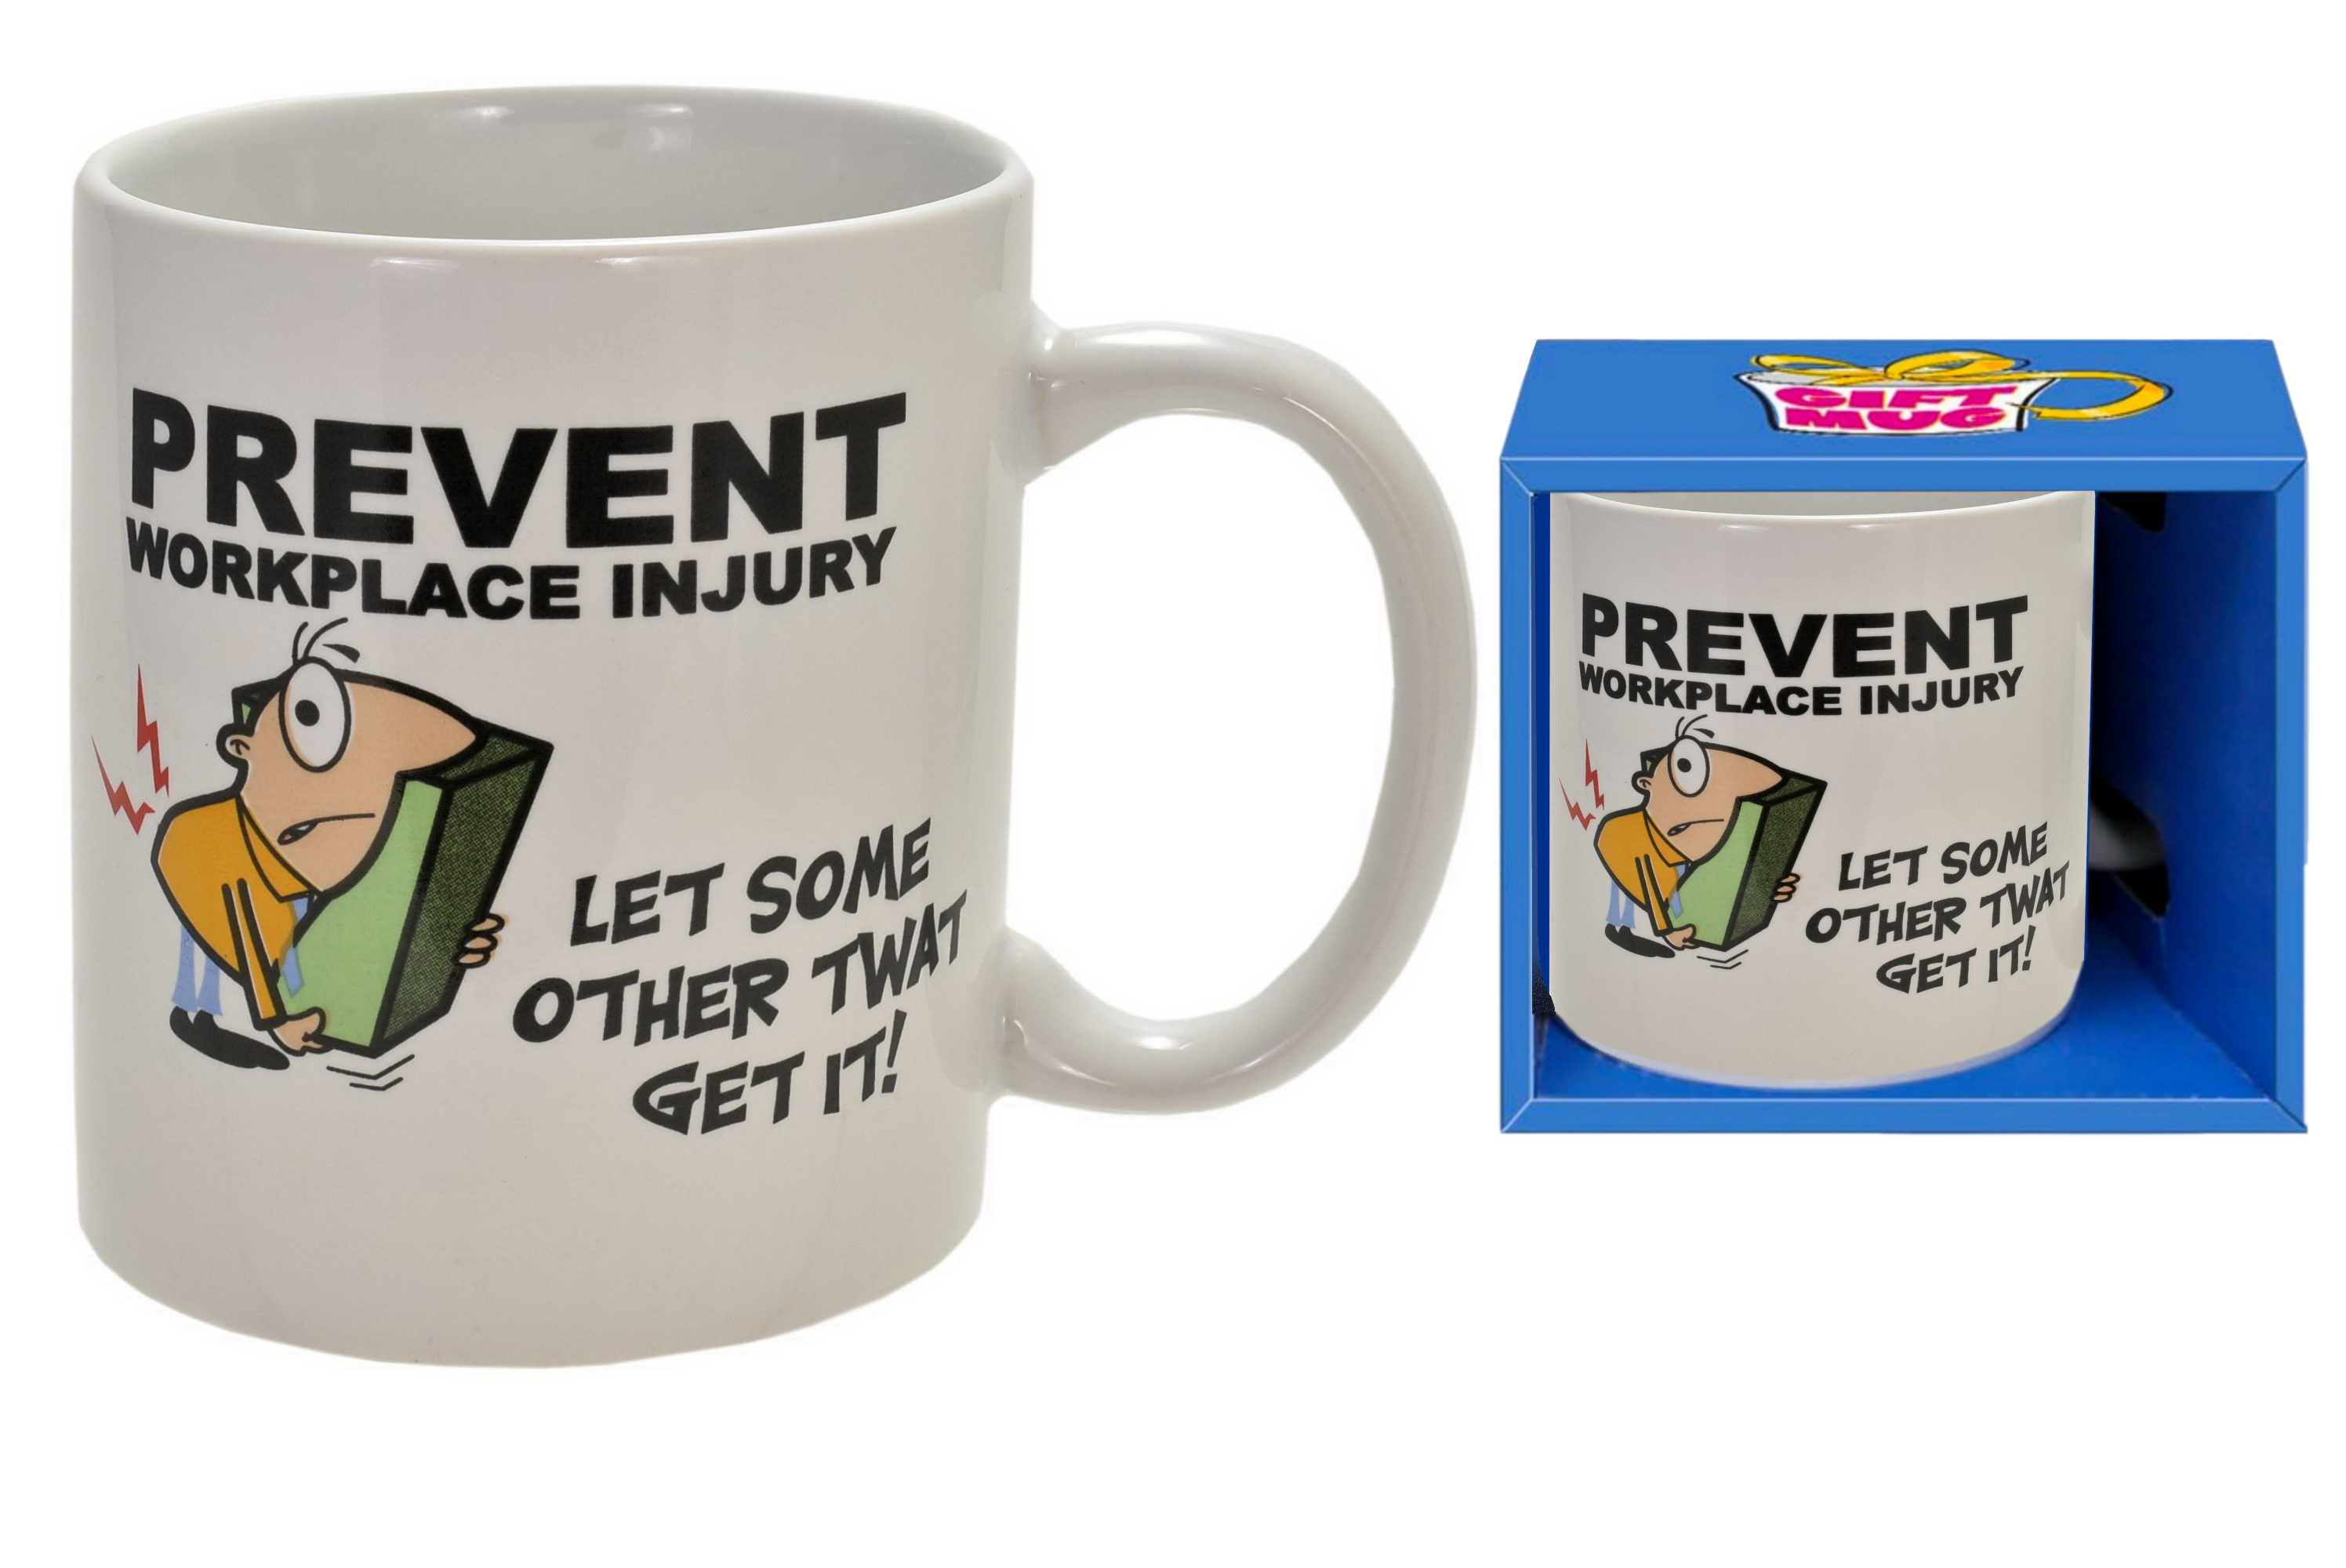 Prevent Workplace Injury Mug In Gift Box